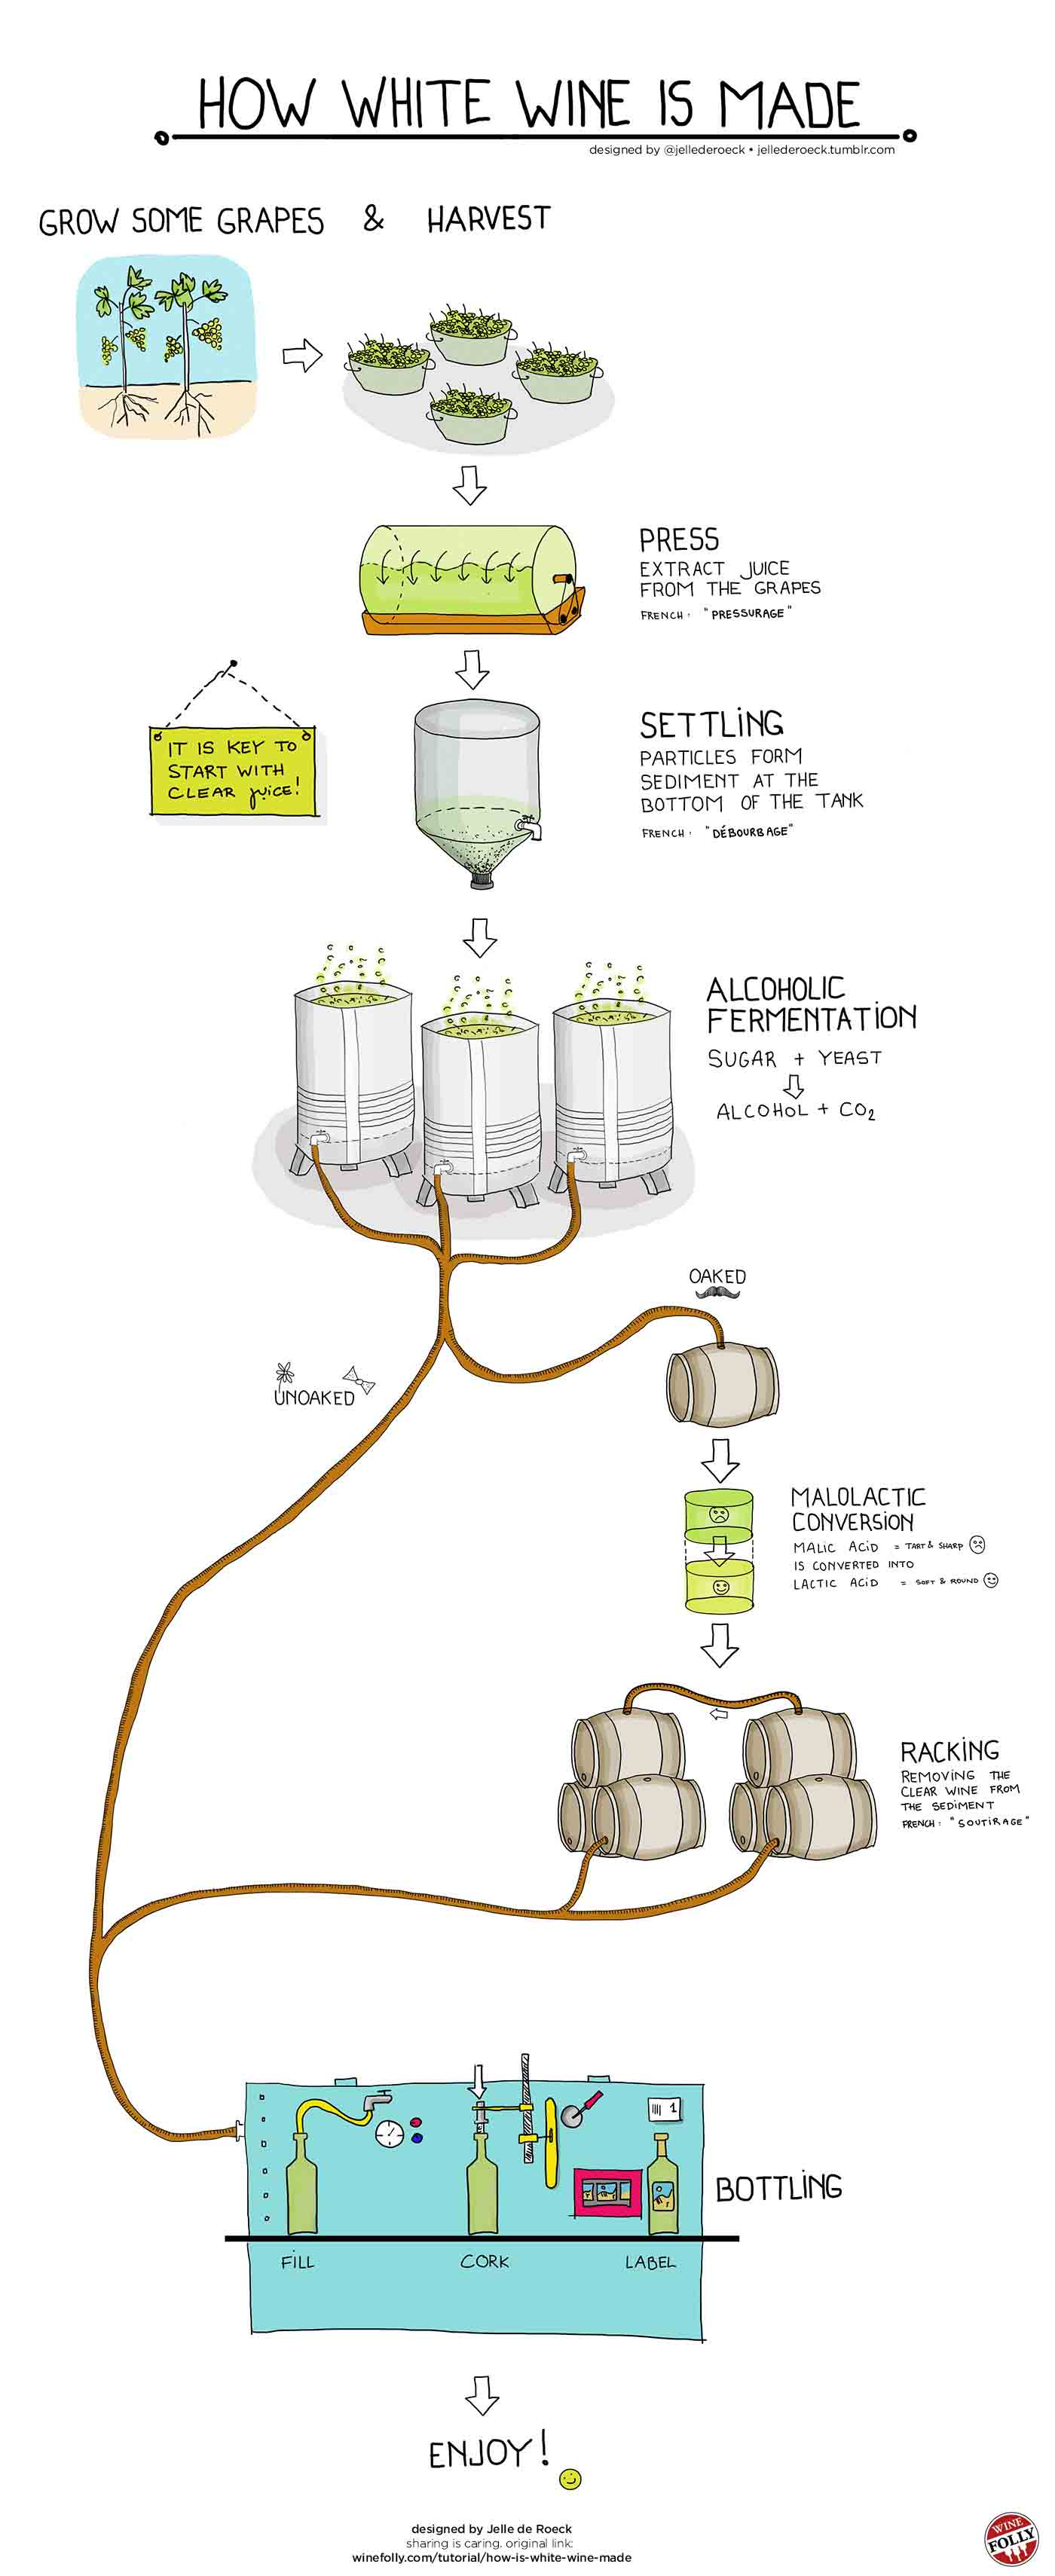 An Infographic Showing the Production Process of How White Wine is Made.